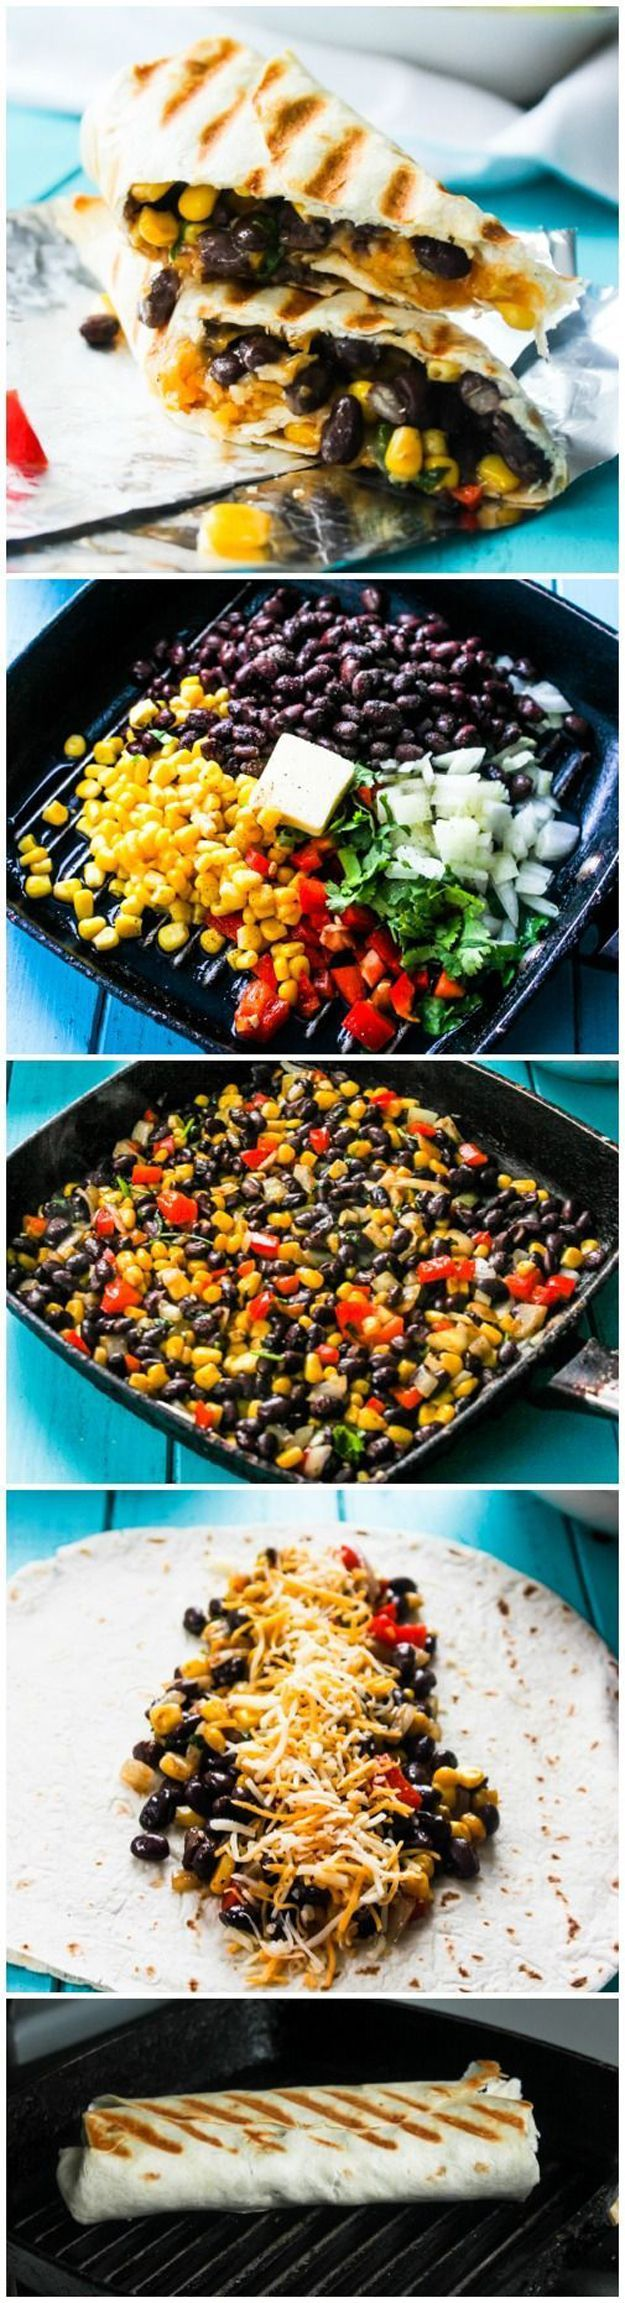 2279 best whats for dinner images on pinterest hands noodles 23 cinco de mayo recipes vegetarian dinnersvegetarian foodvegetarian recipes easyvegan forumfinder Images